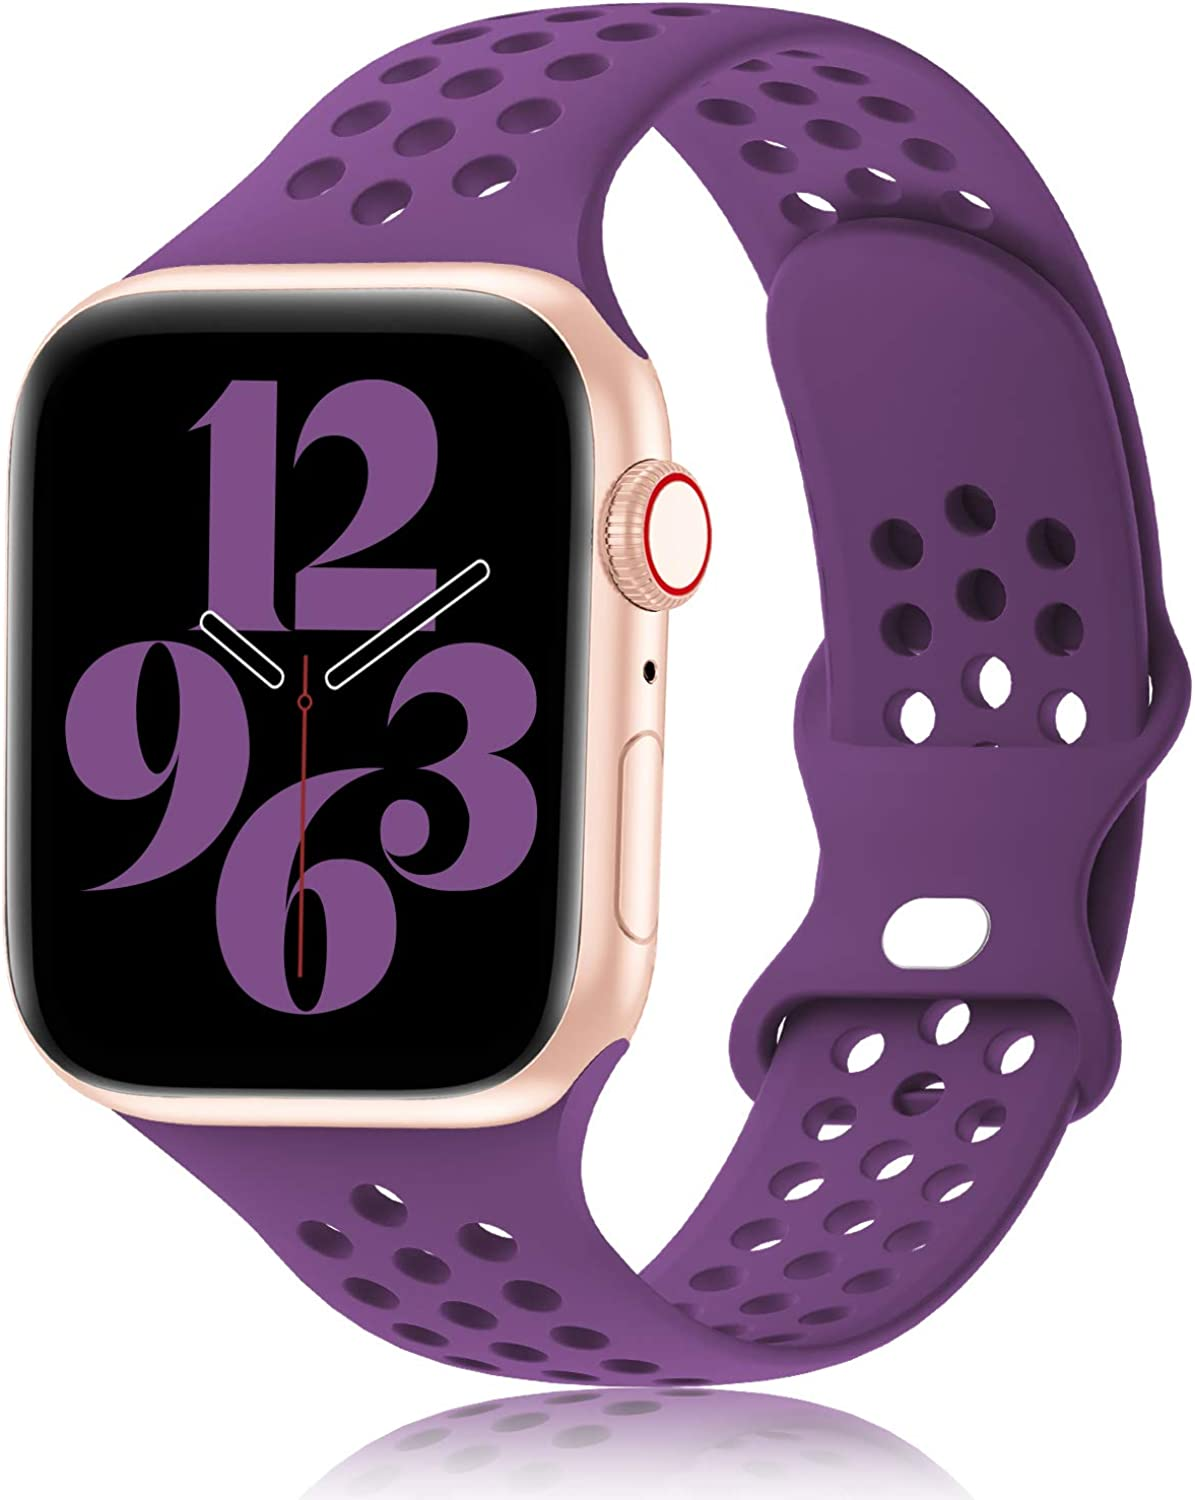 The Best Apple Iwatch Bands Purple Silicone